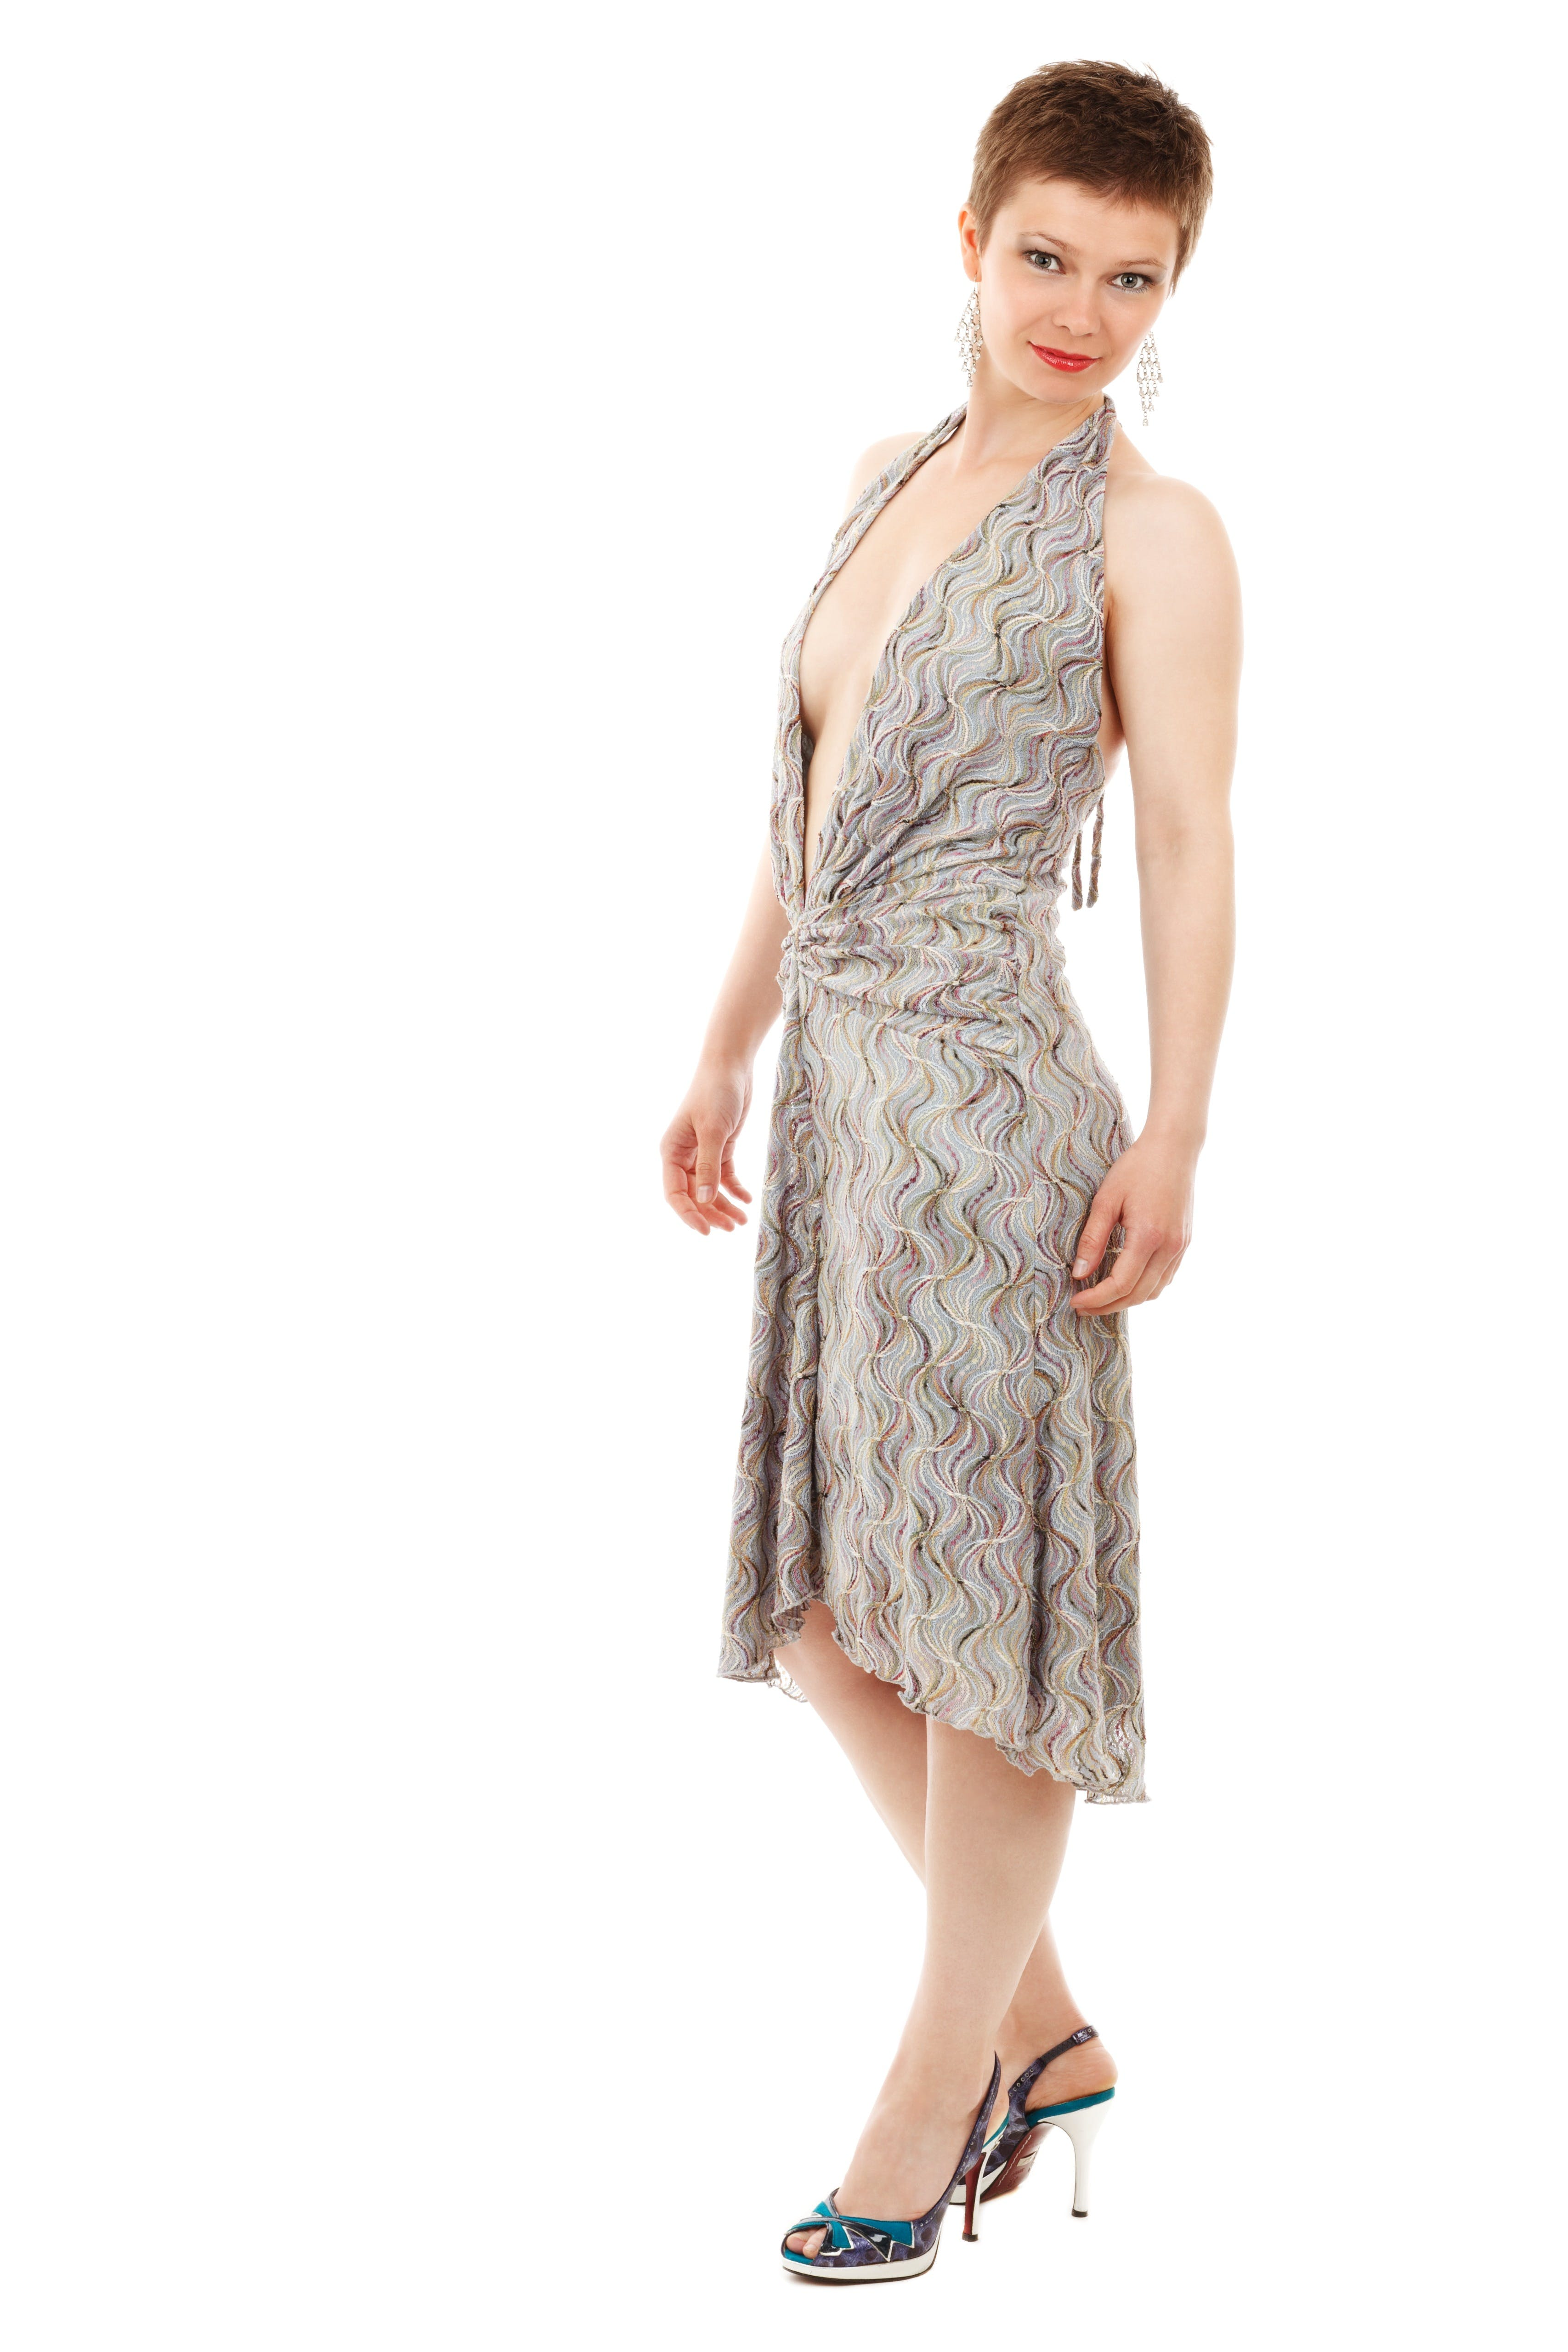 Women's Gray Halter Dress